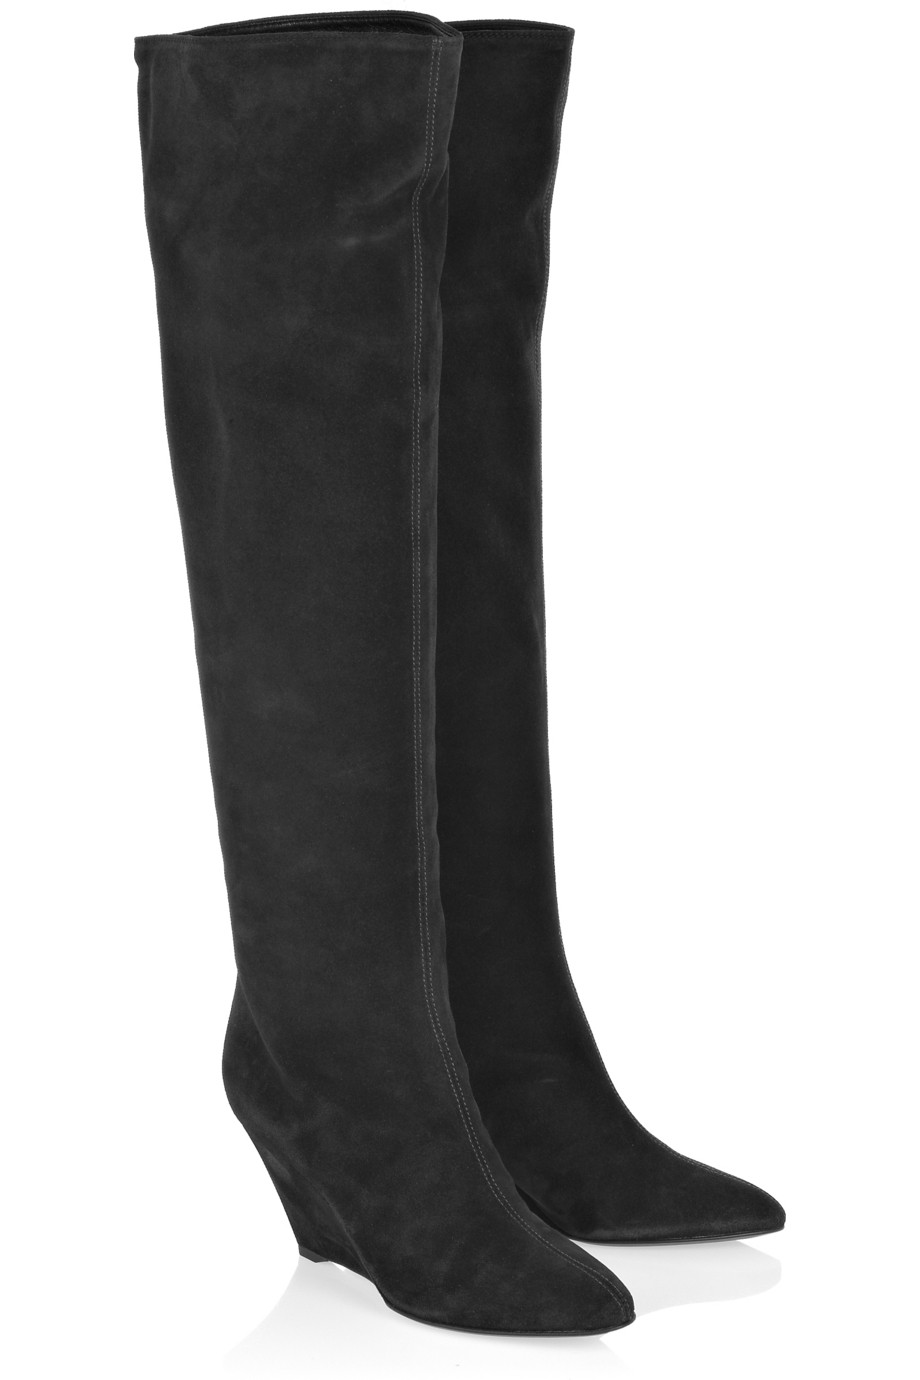 giuseppe zanotti suede knee high wedge boots in gray lyst